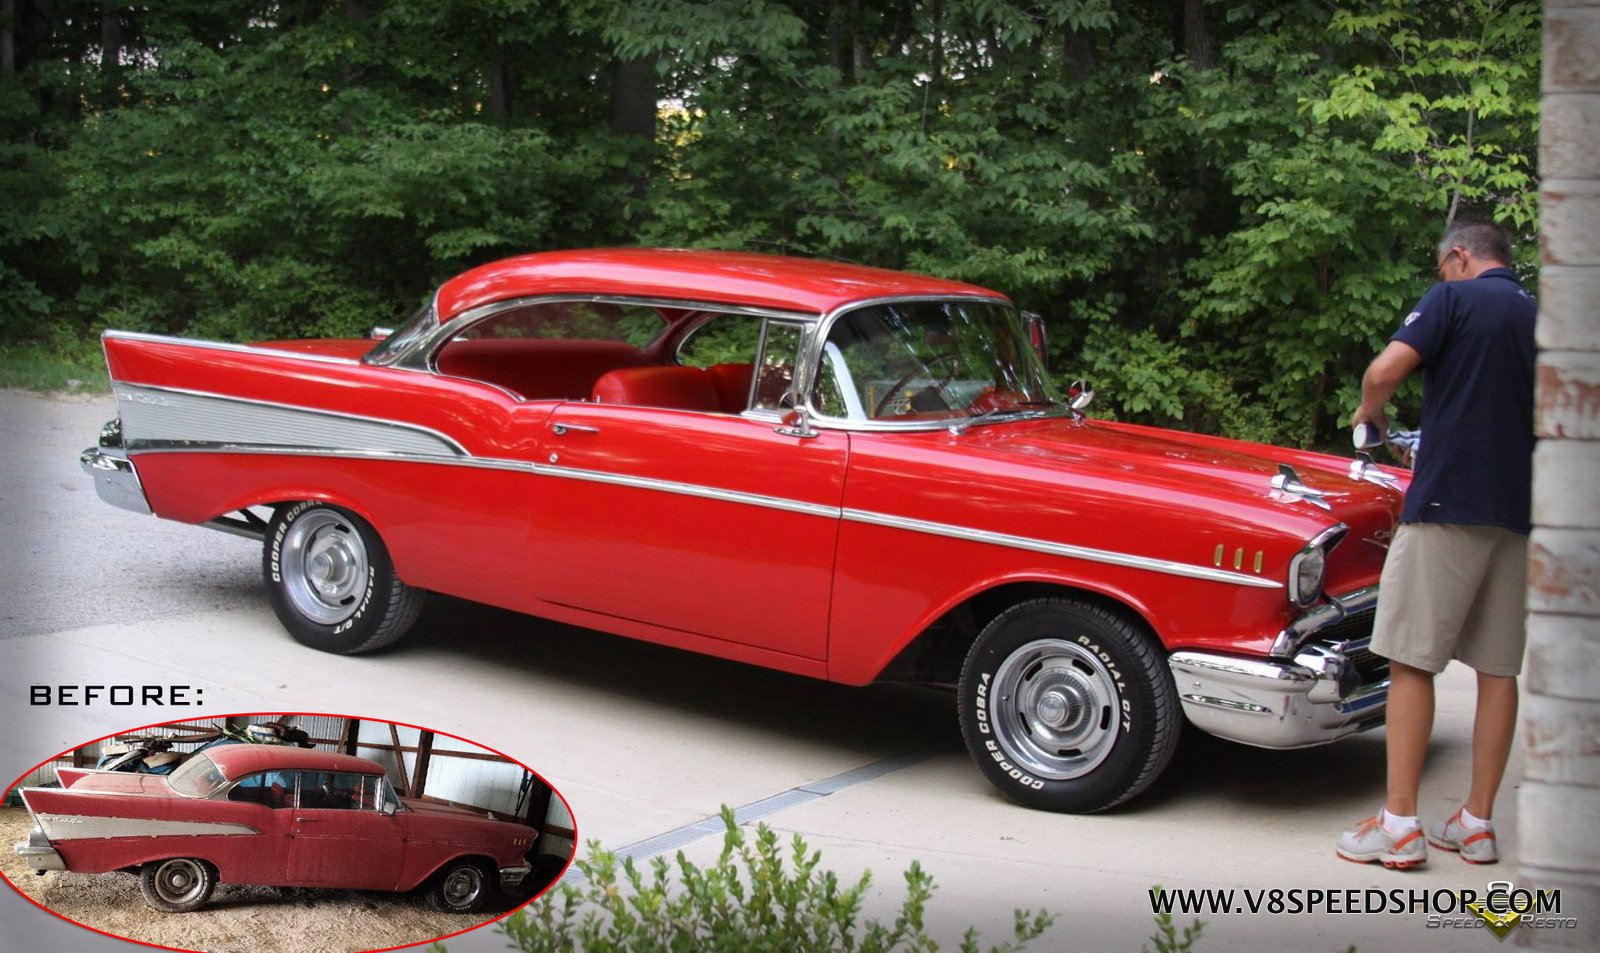 1957 Chevrolet Bel Air Chassis & Floor Restoration at V8 Speed & Resto Shop